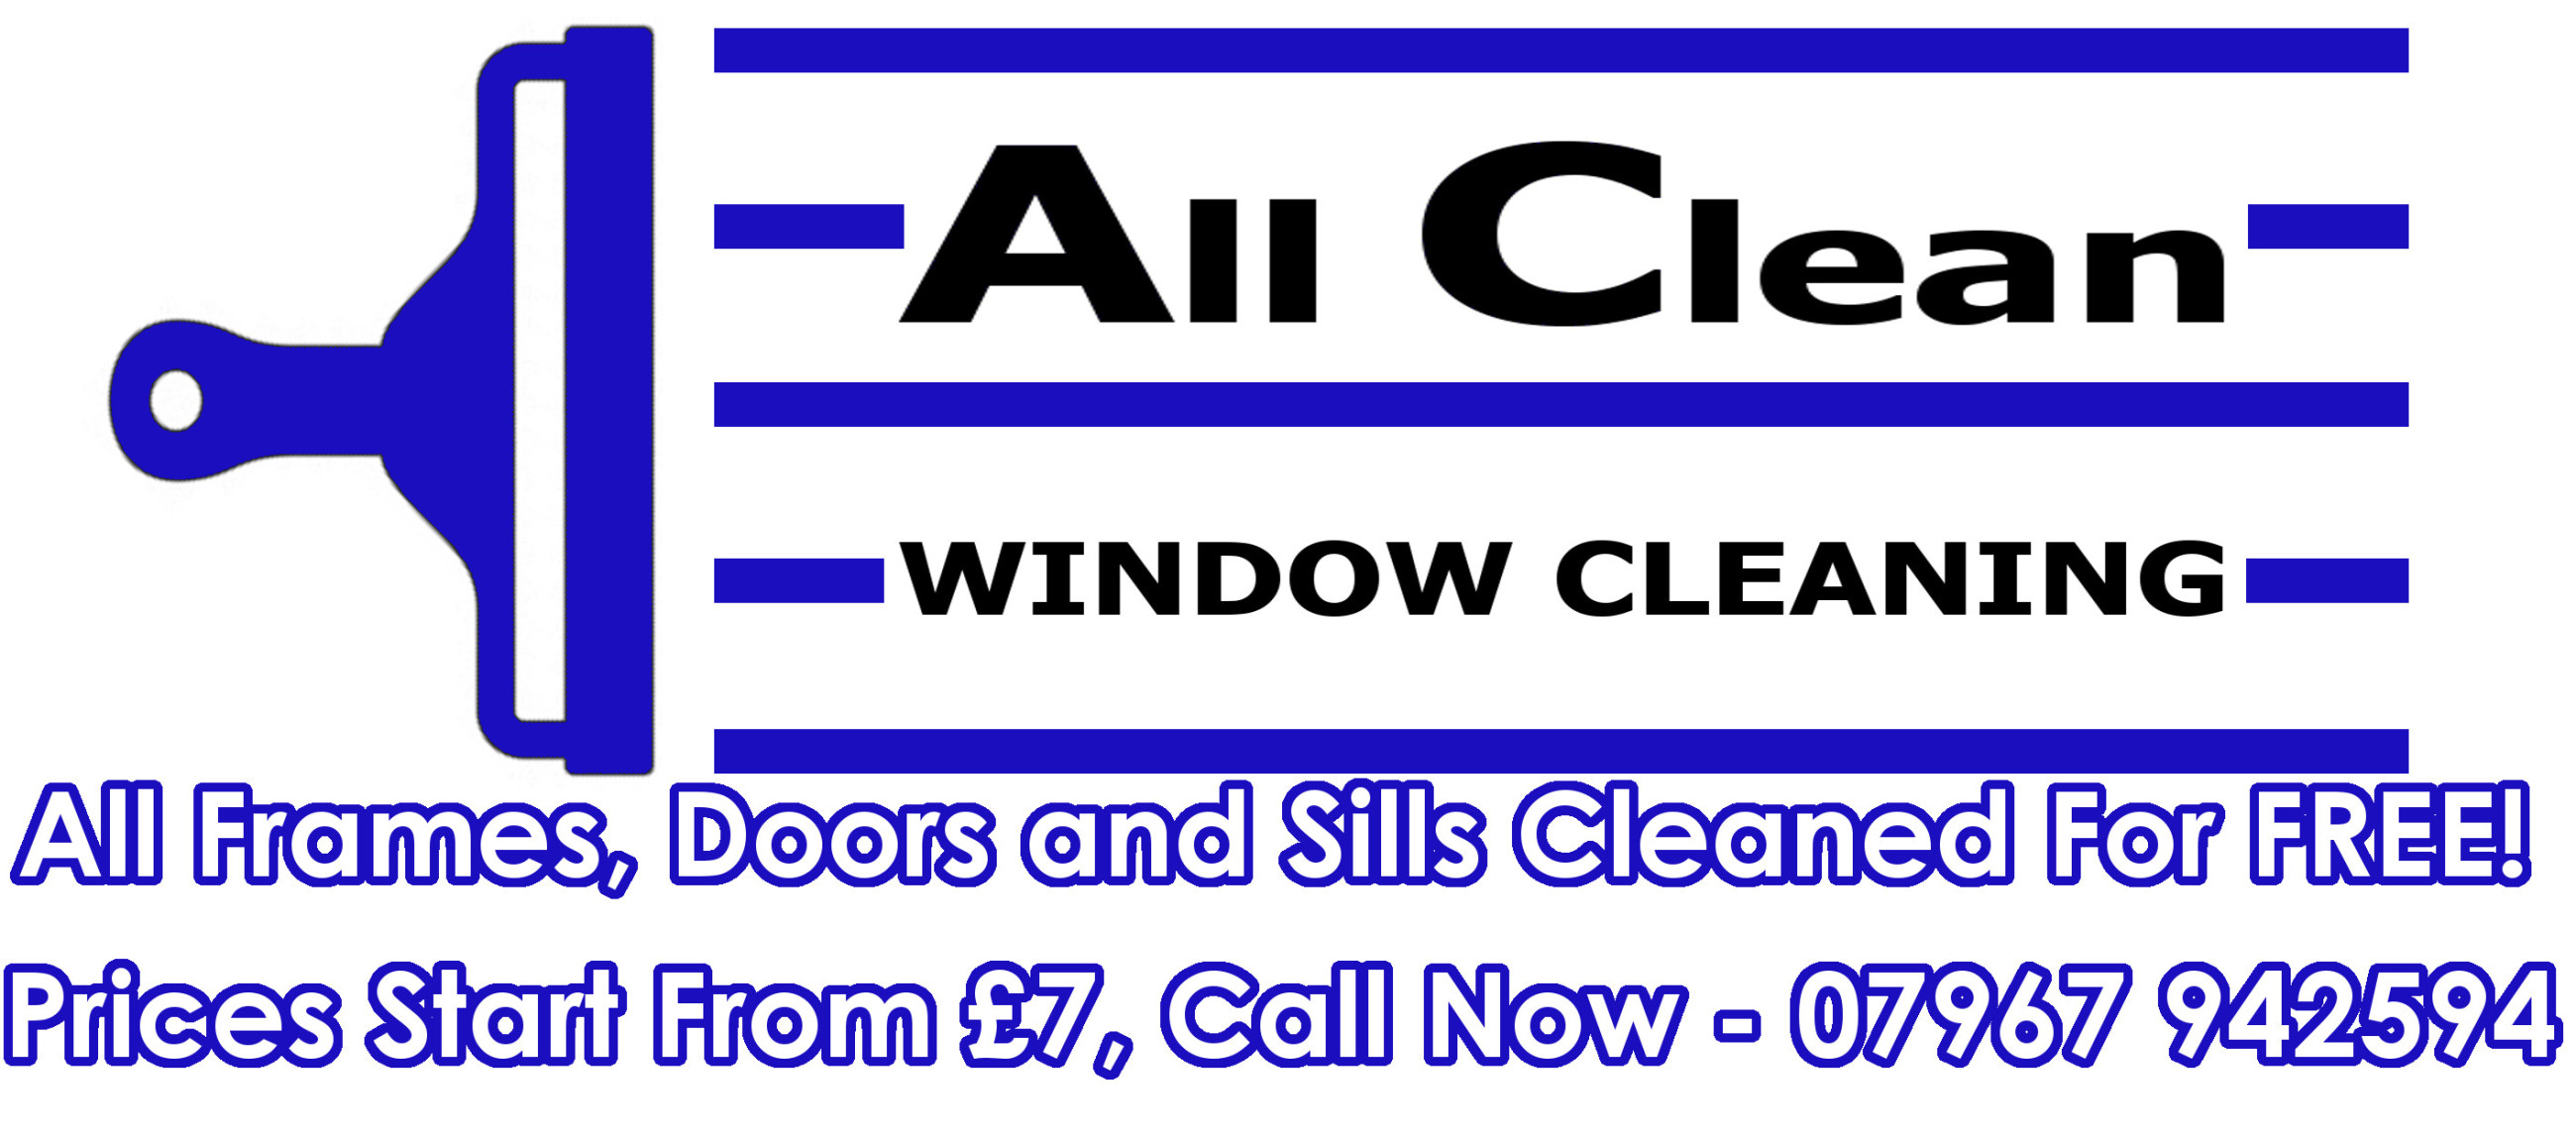 window cleaner southport